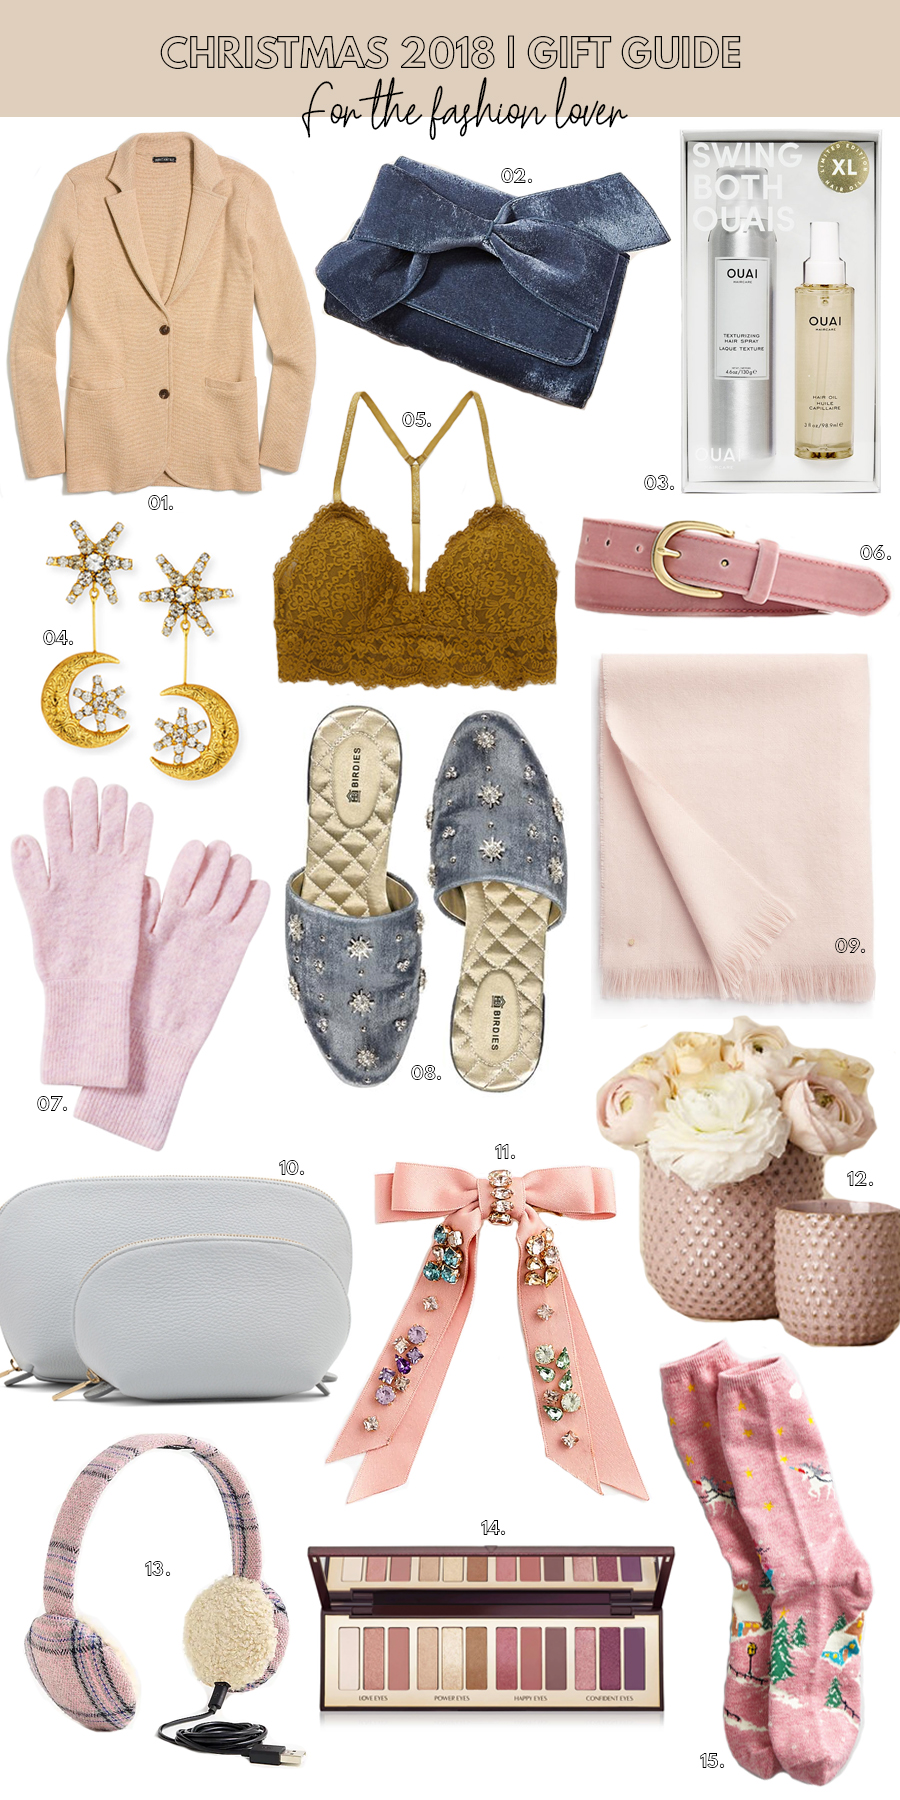 Christmas Gifts 2018 For Her.Christmas 2018 Gift Guide For The Fashion Lover The